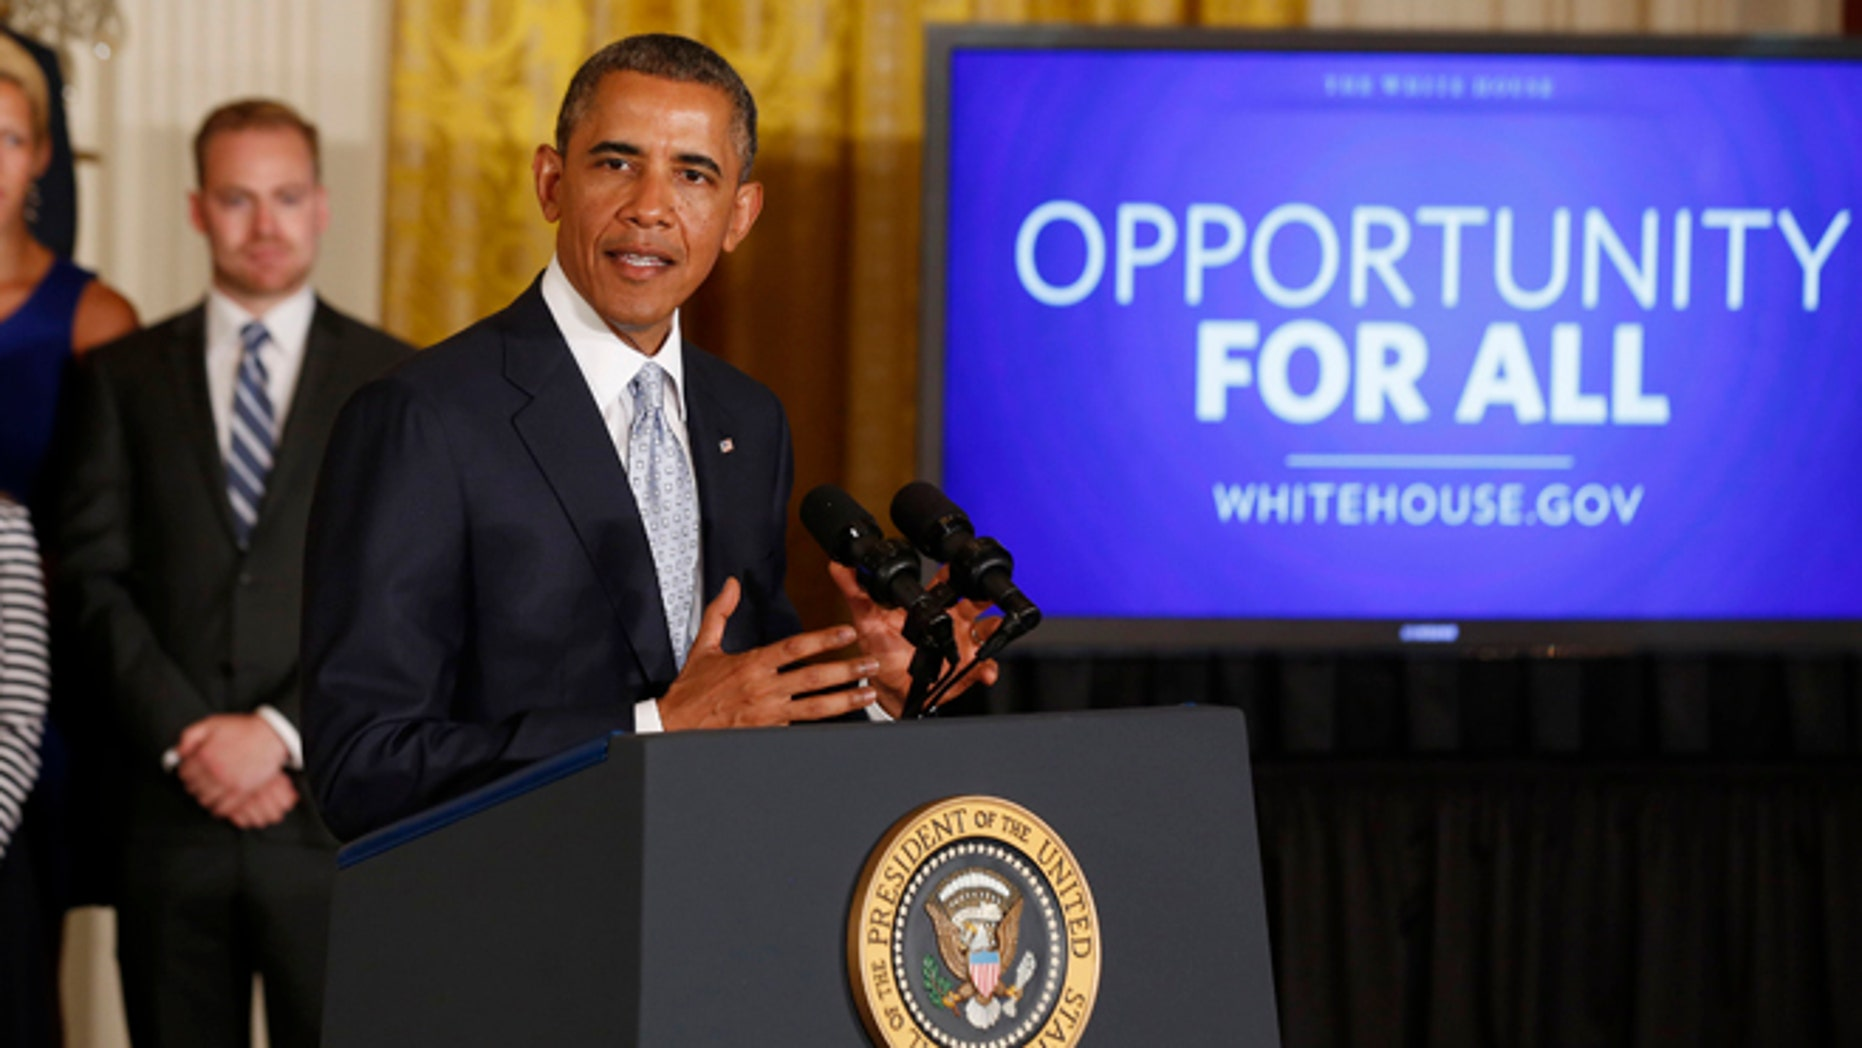 June 9, 2014: President Obama speaks before he signs a presidential memorandum on reducing the burden of student loan debt in the East Room of the White House.